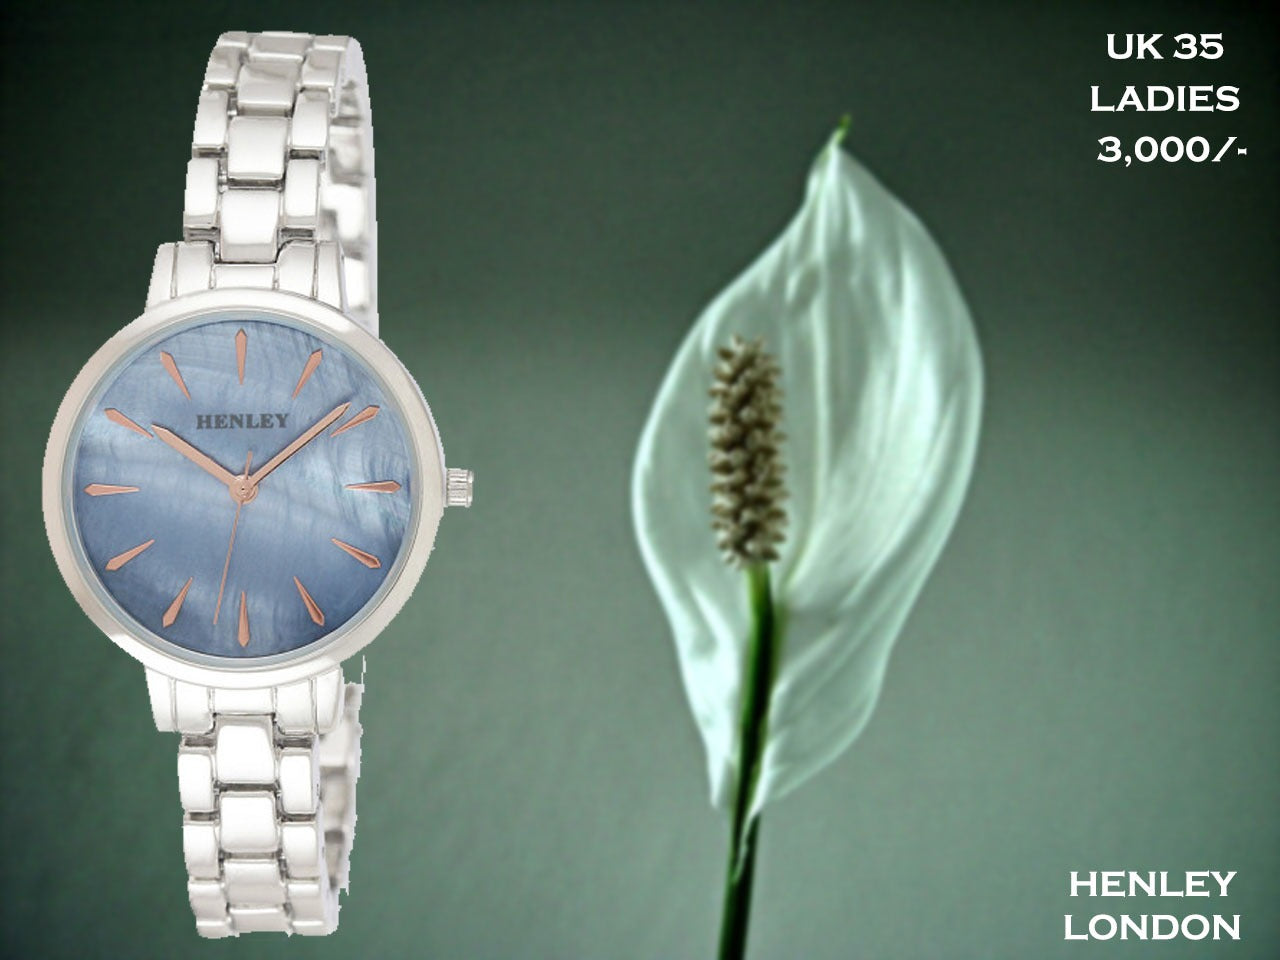 Henley London Exclusive Ladies Timepiece UK 35